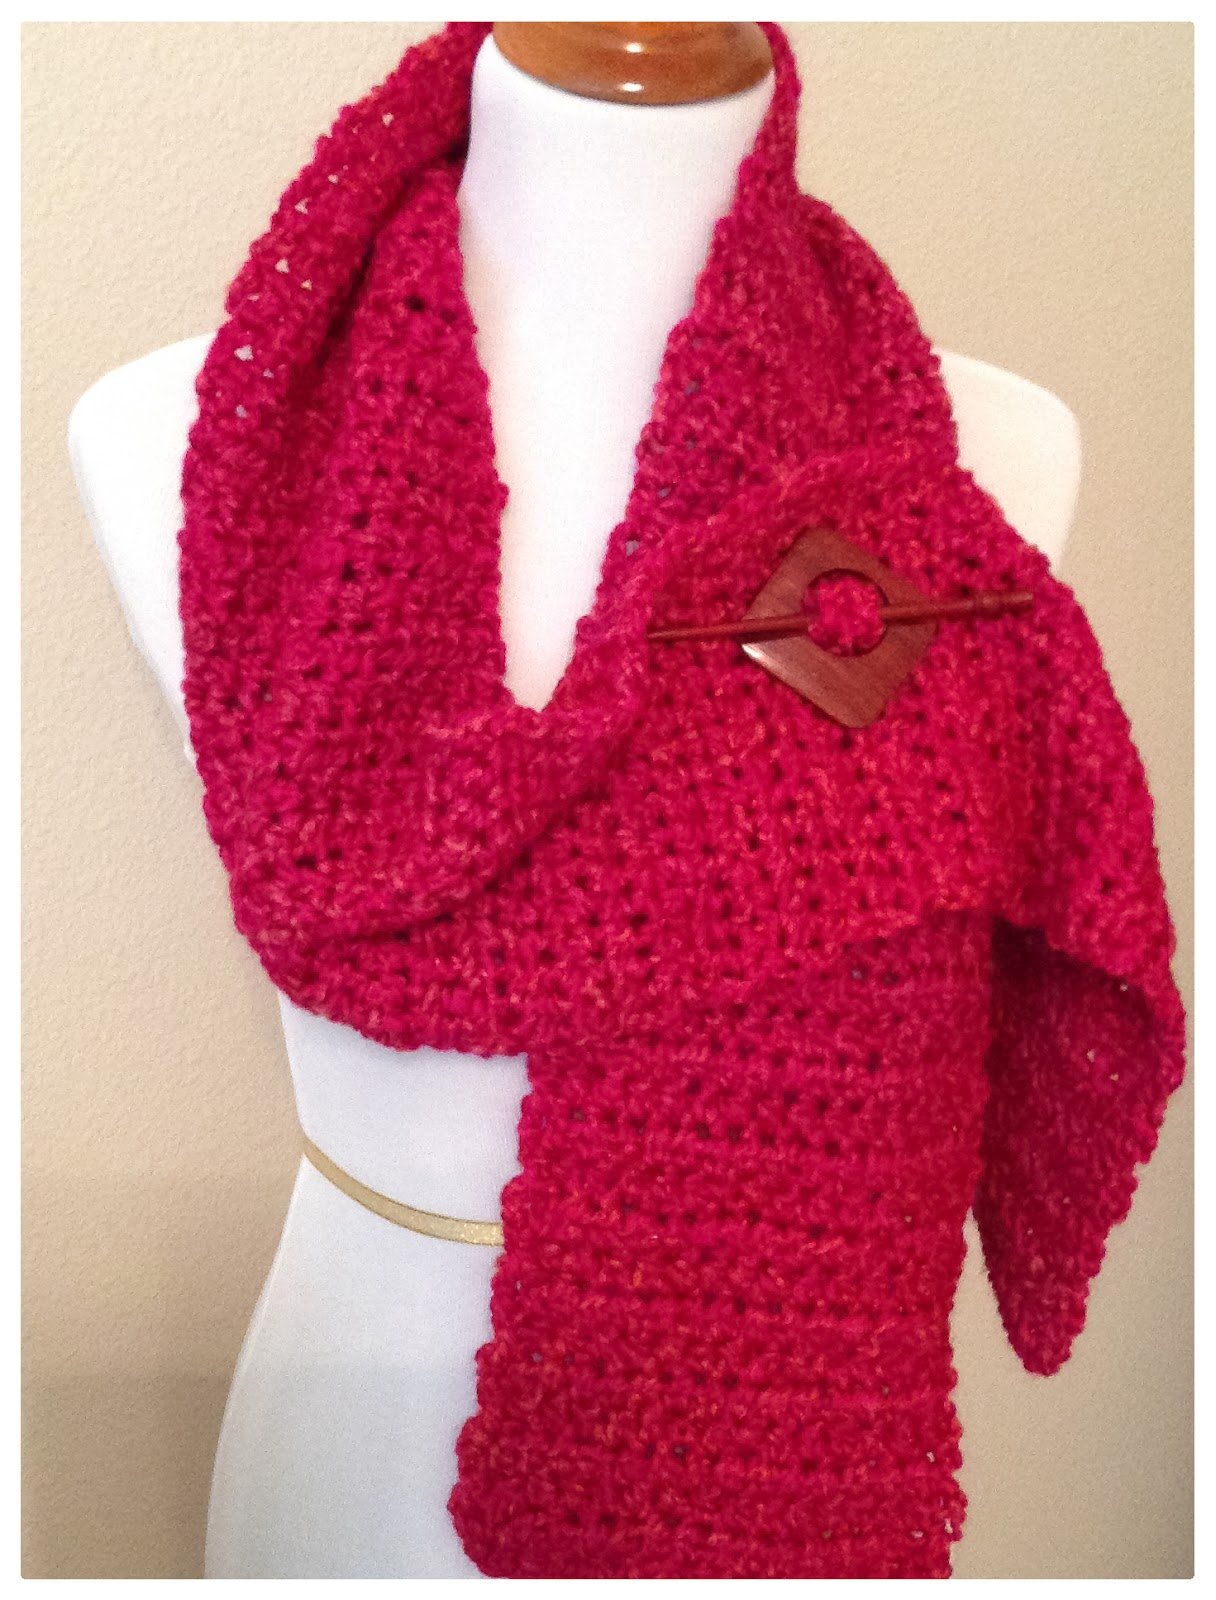 Crochet Pattern For Scarf With Homespun Yarn : Knotted Threads and Yarn: Easy One Skein Crochet Homespun ...